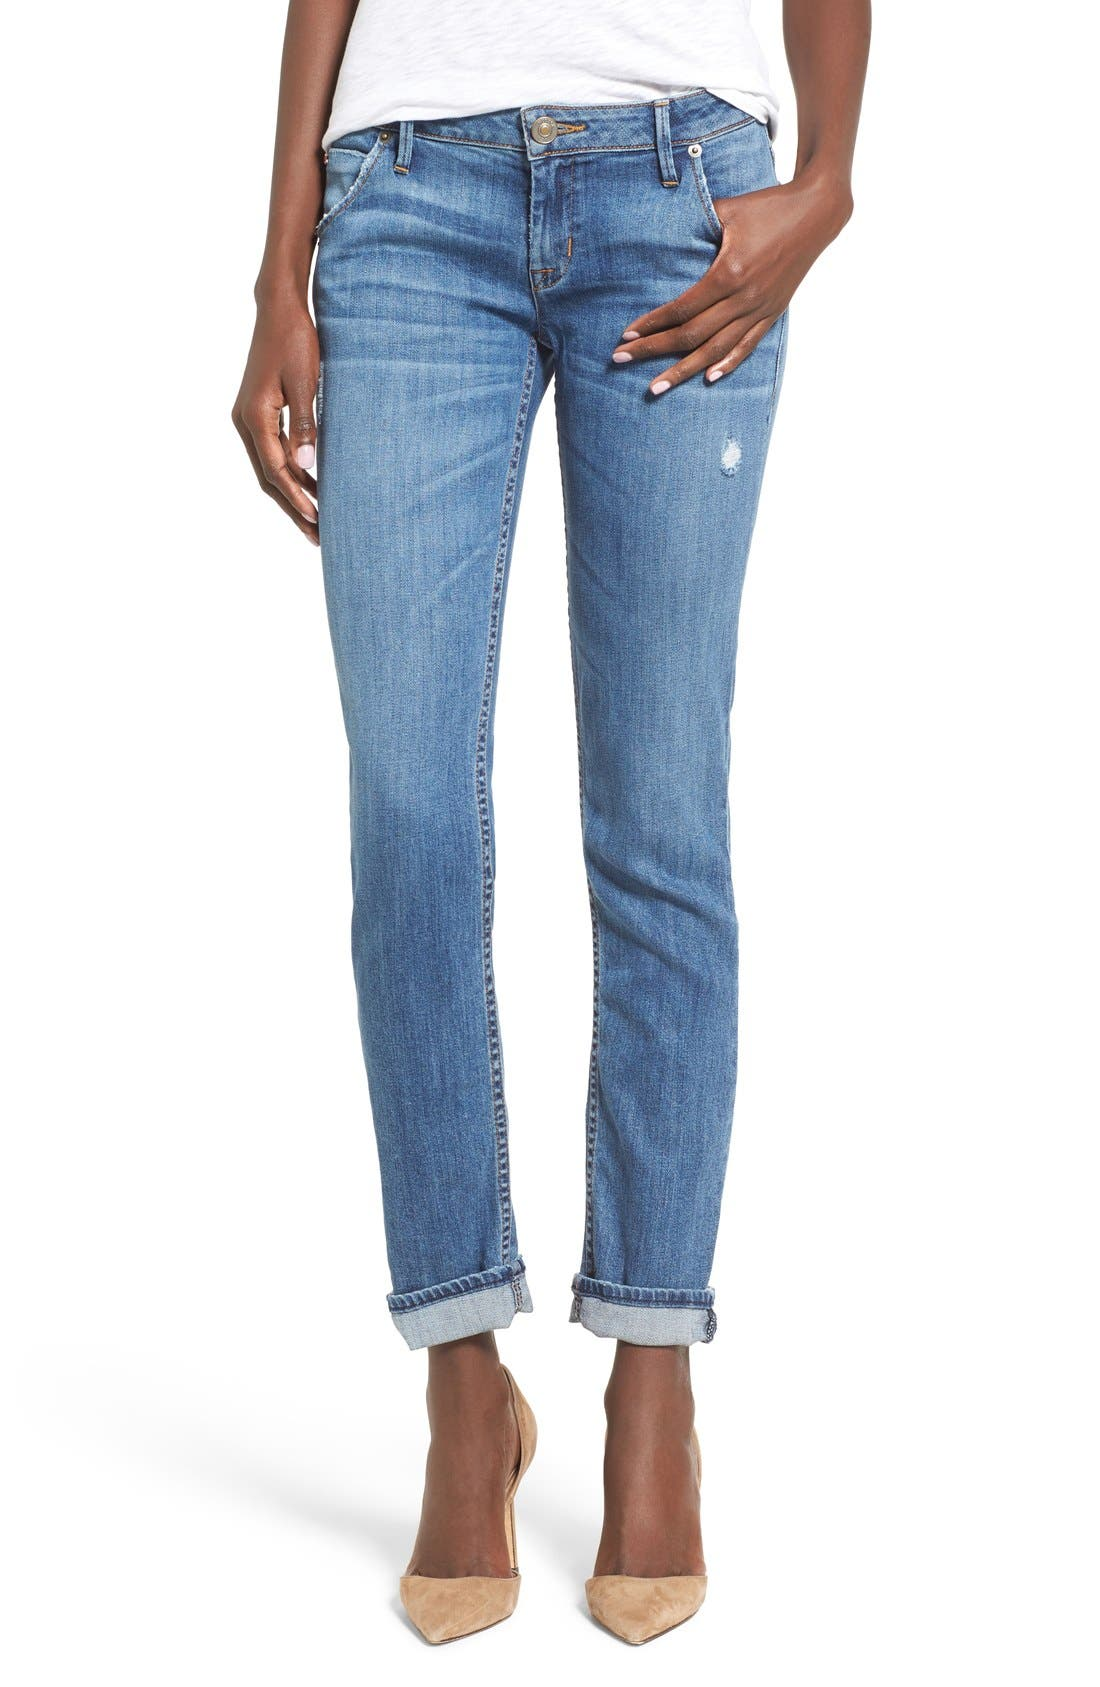 'Jax' Slim Boyfriend Jeans,                             Main thumbnail 1, color,                             425